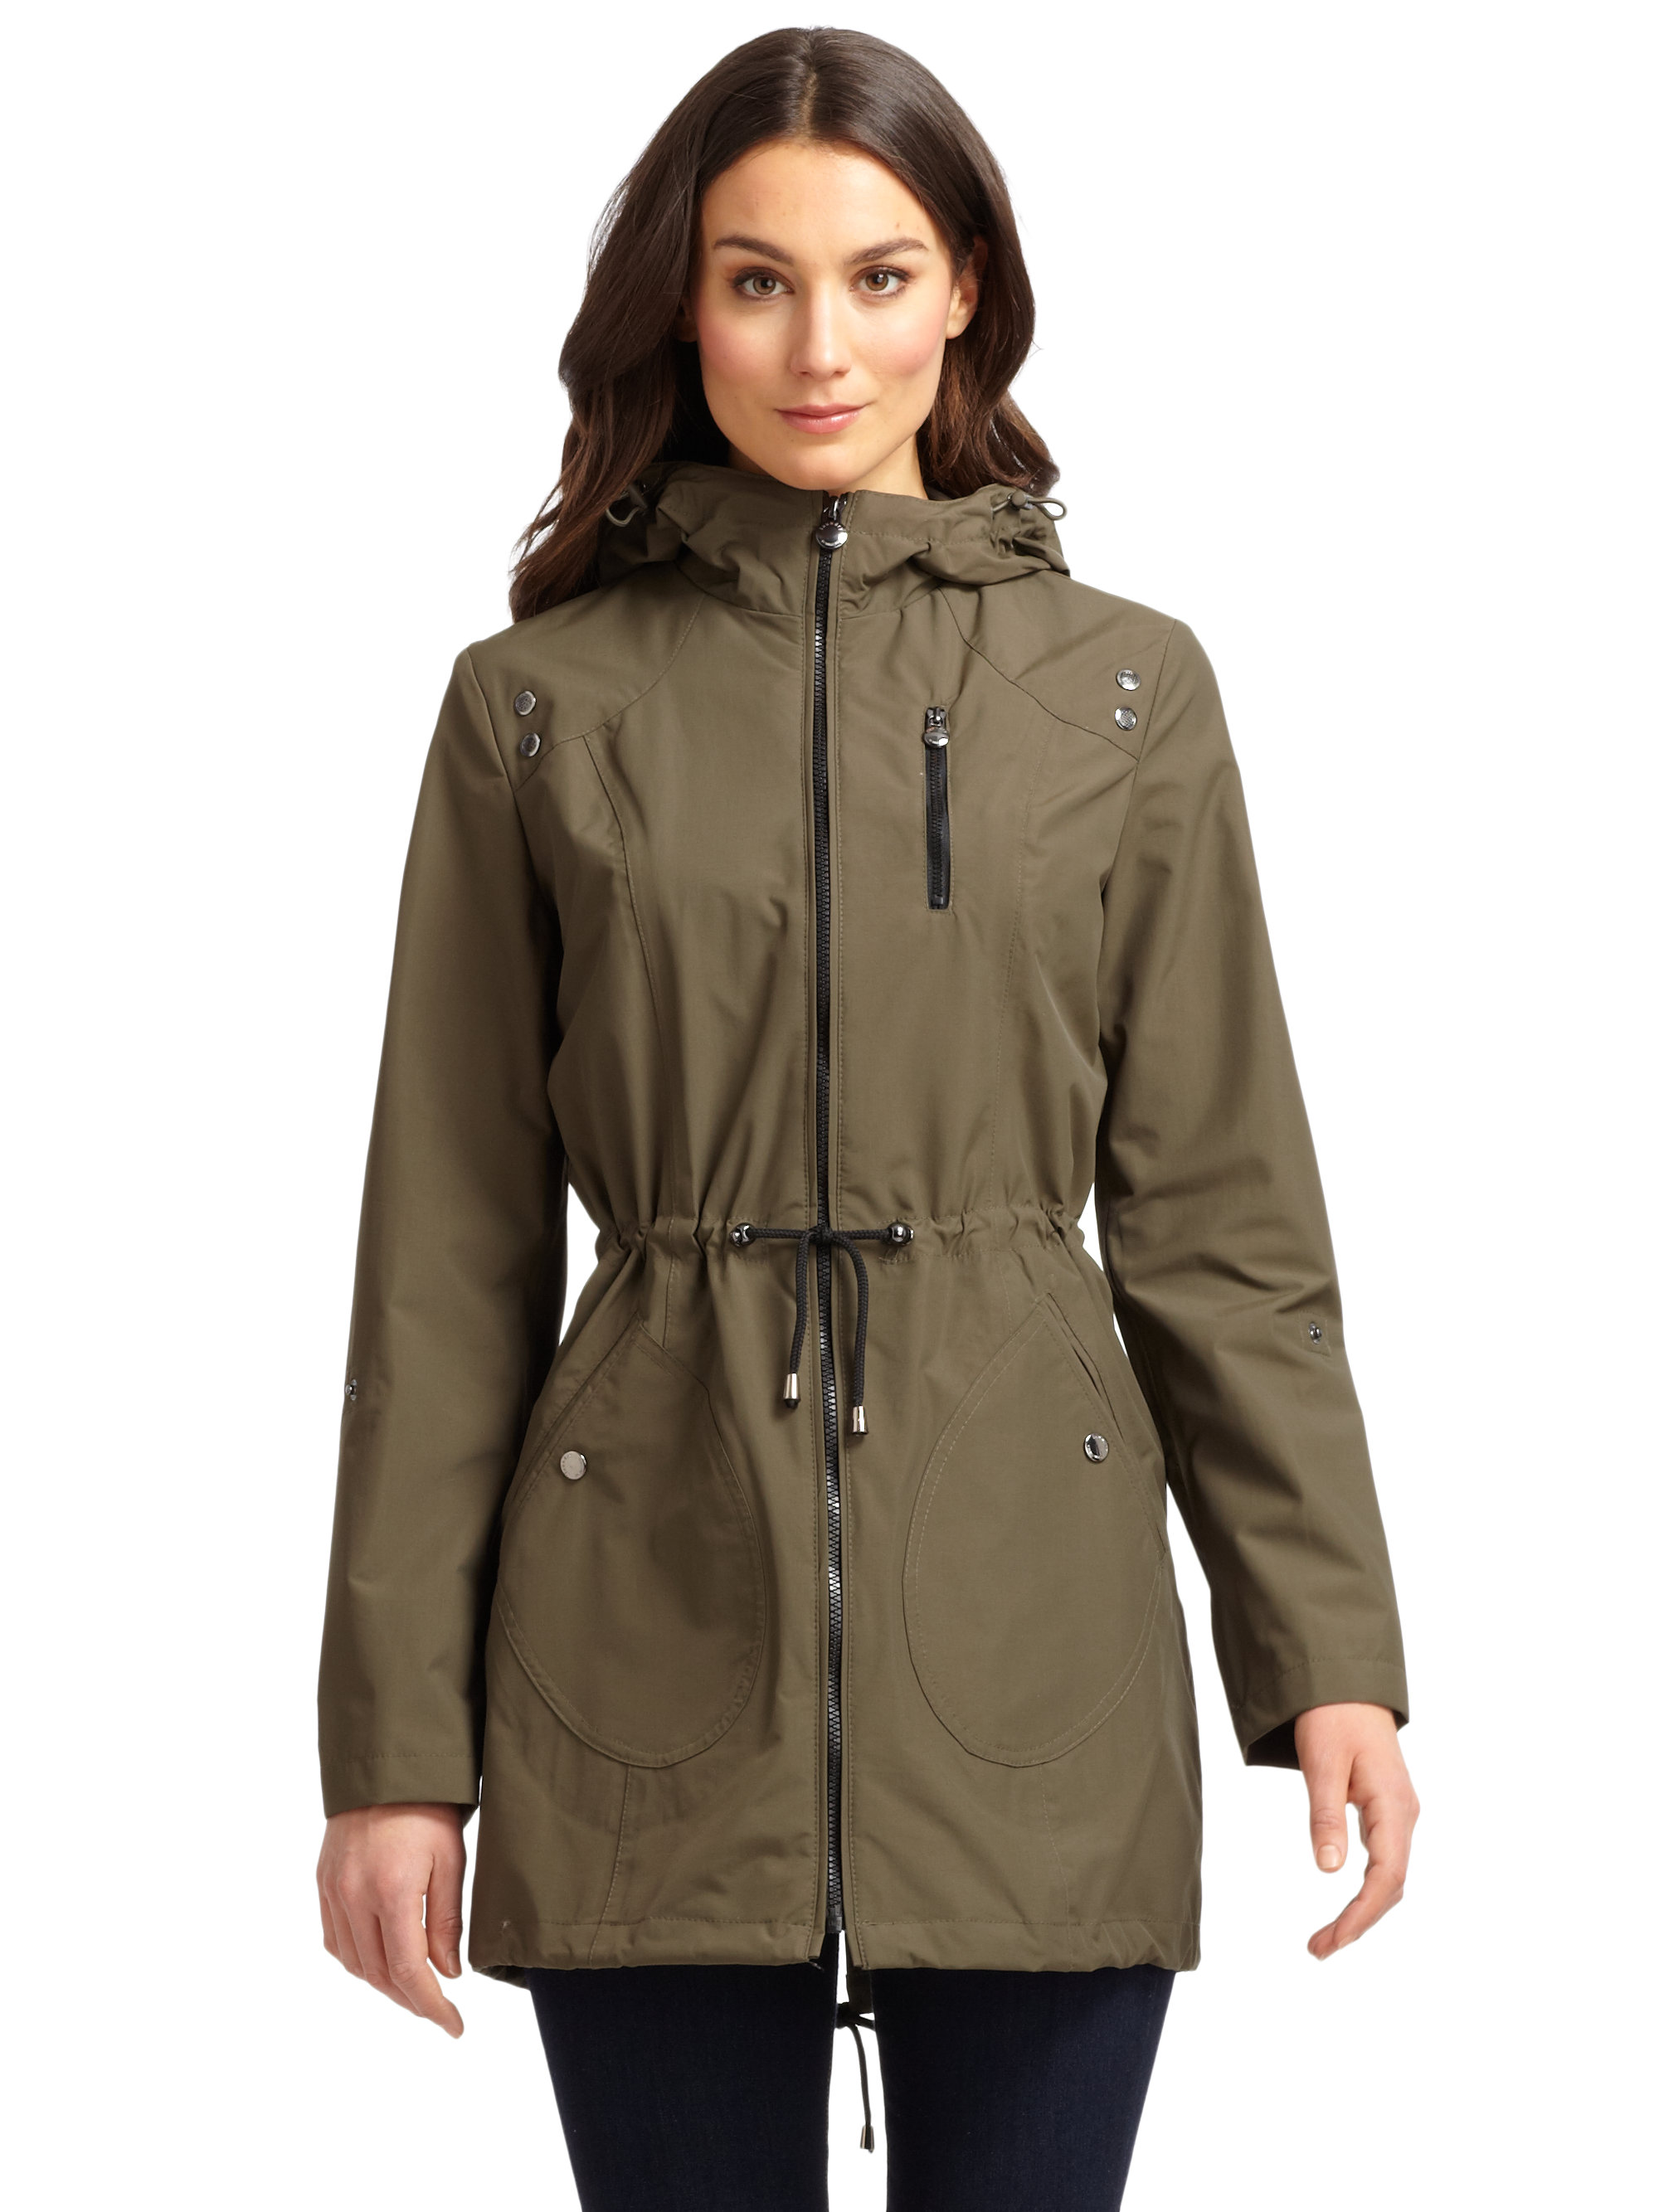 910132197c41 Lyst - Laundry by Shelli Segal Waterproof Anorak Jacket in Natural